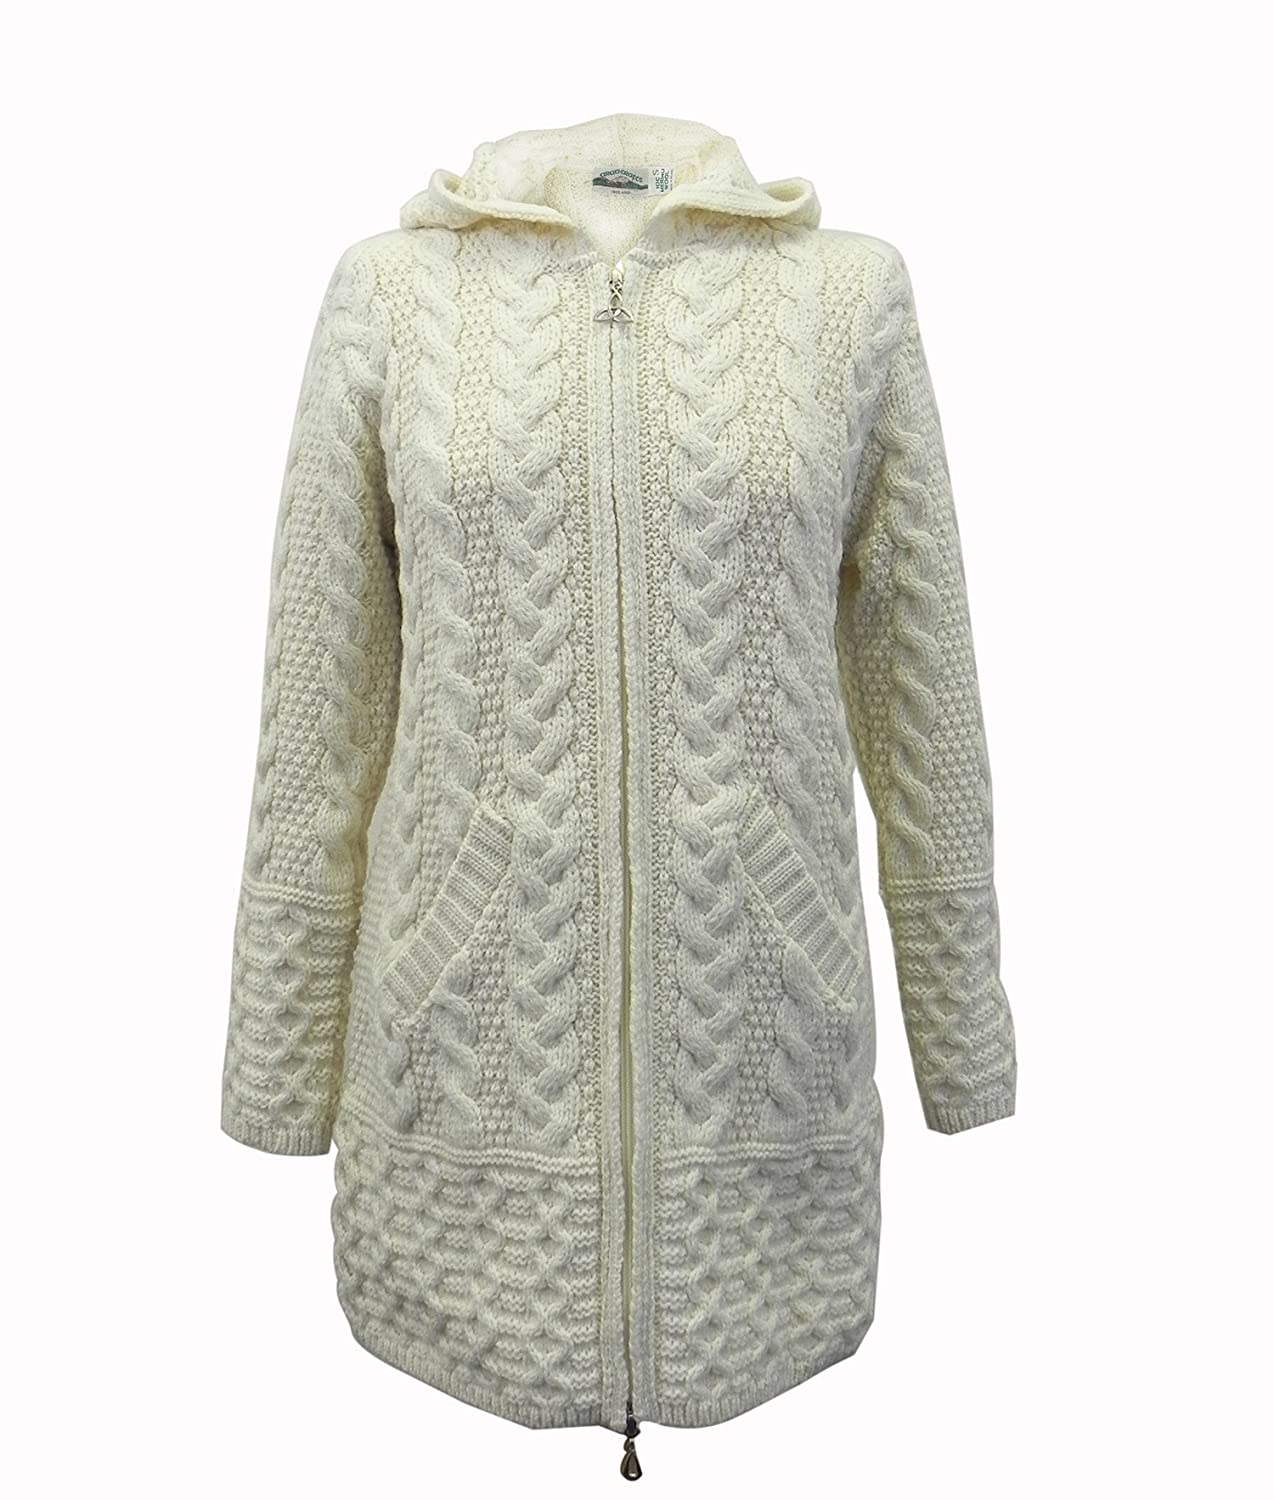 Womens sweater coat